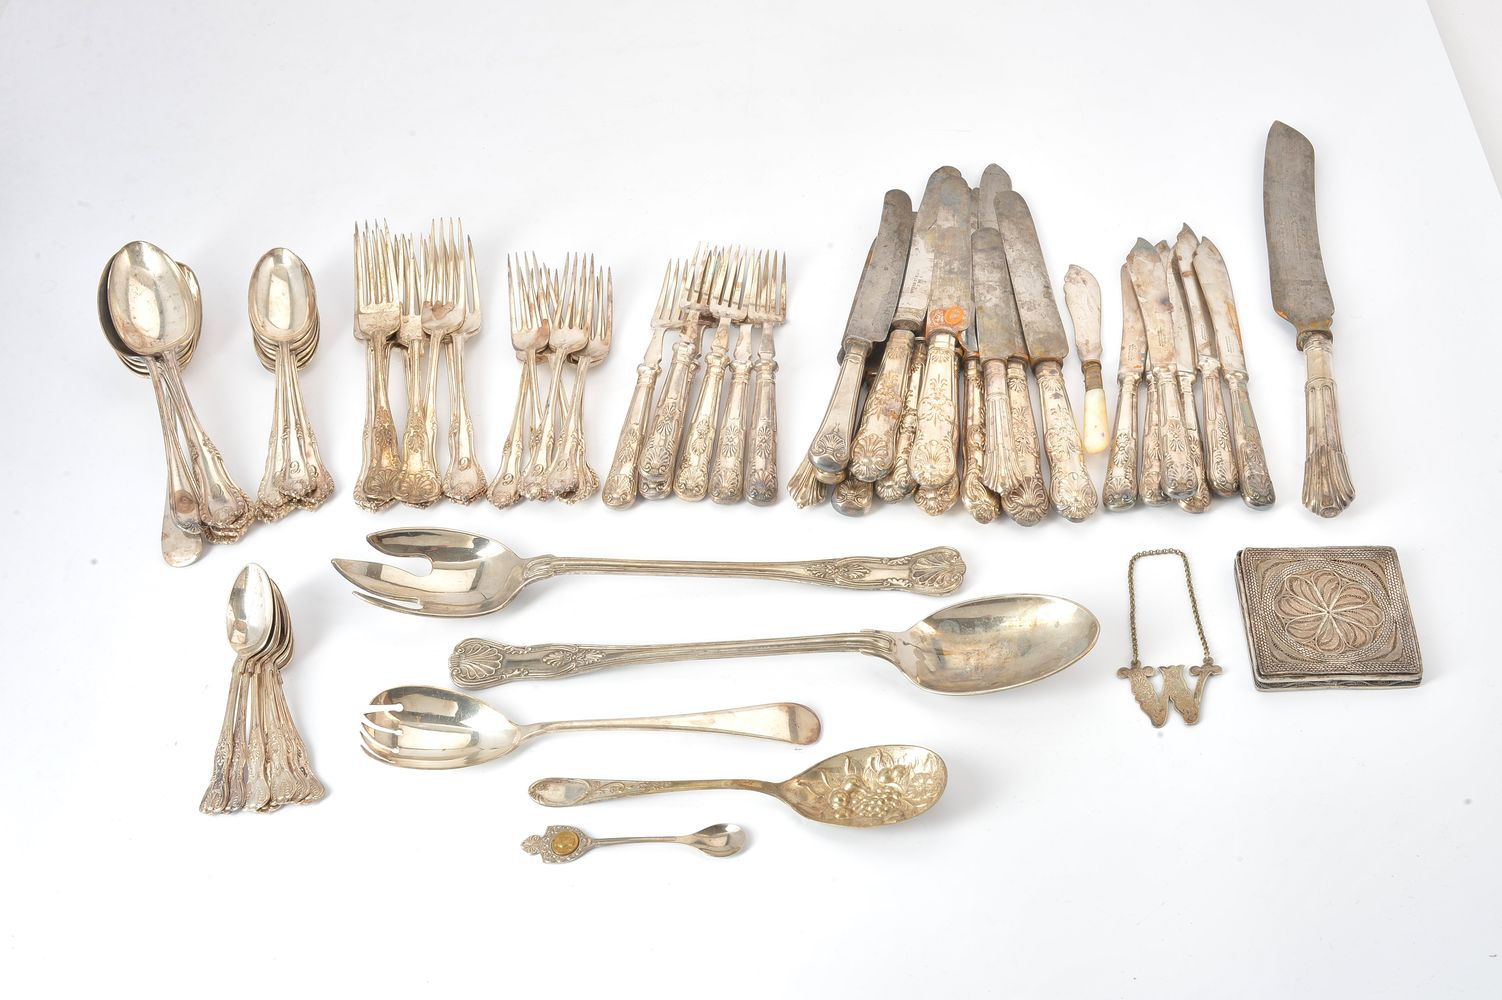 Lot 653 - A collection of silver and plated items